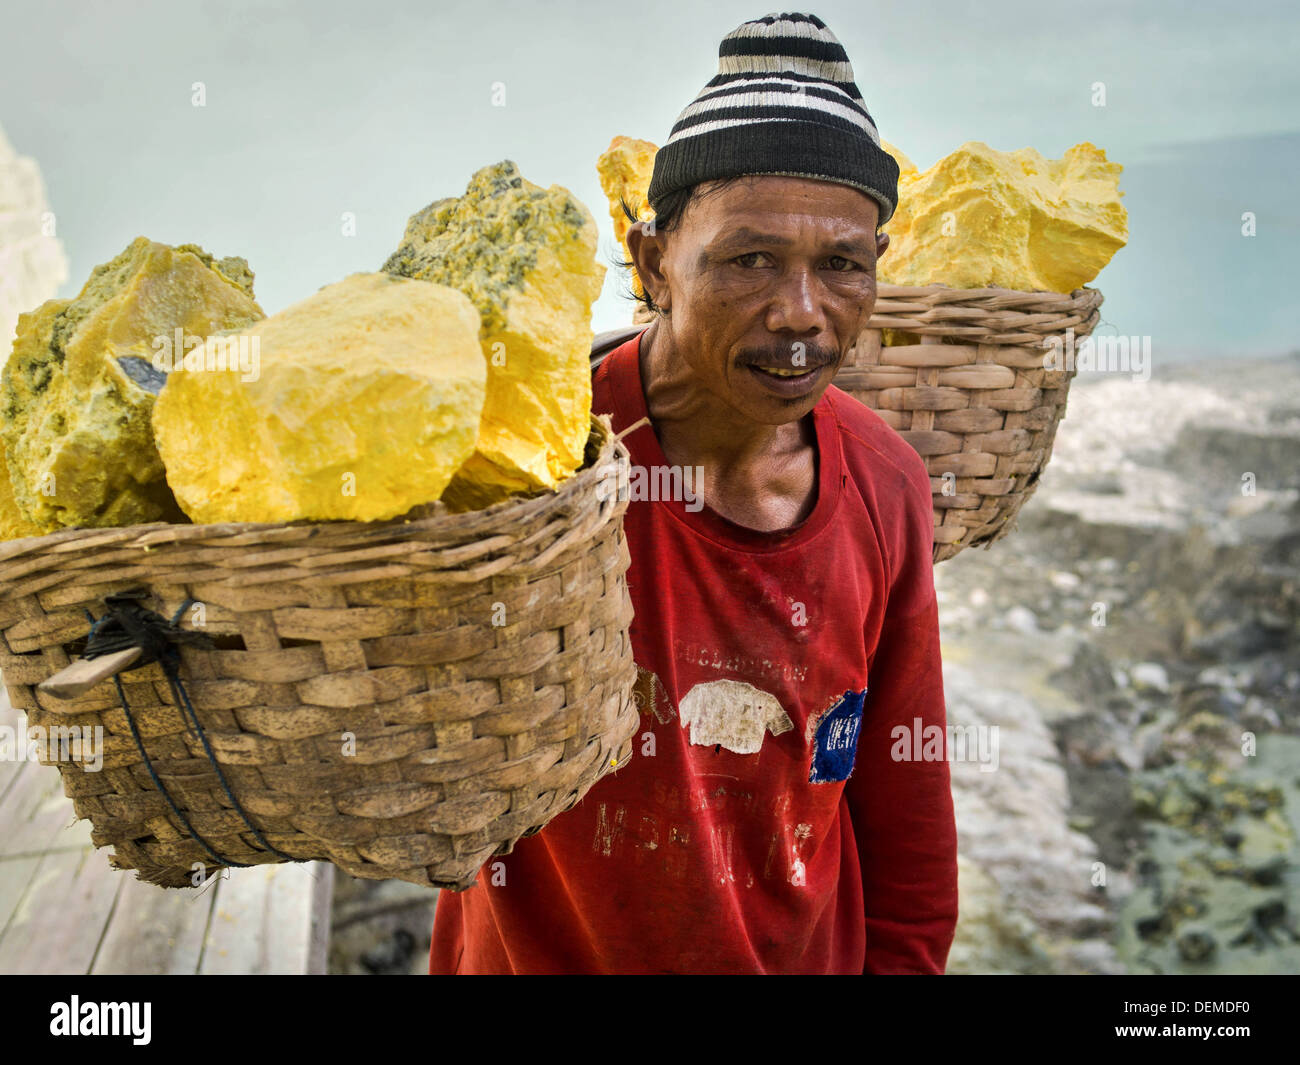 Portrait of a sulfur miner carrying baskets loaded with sulfur at Kawah Ijen volcano in East Java, Indonesia. - Stock Image